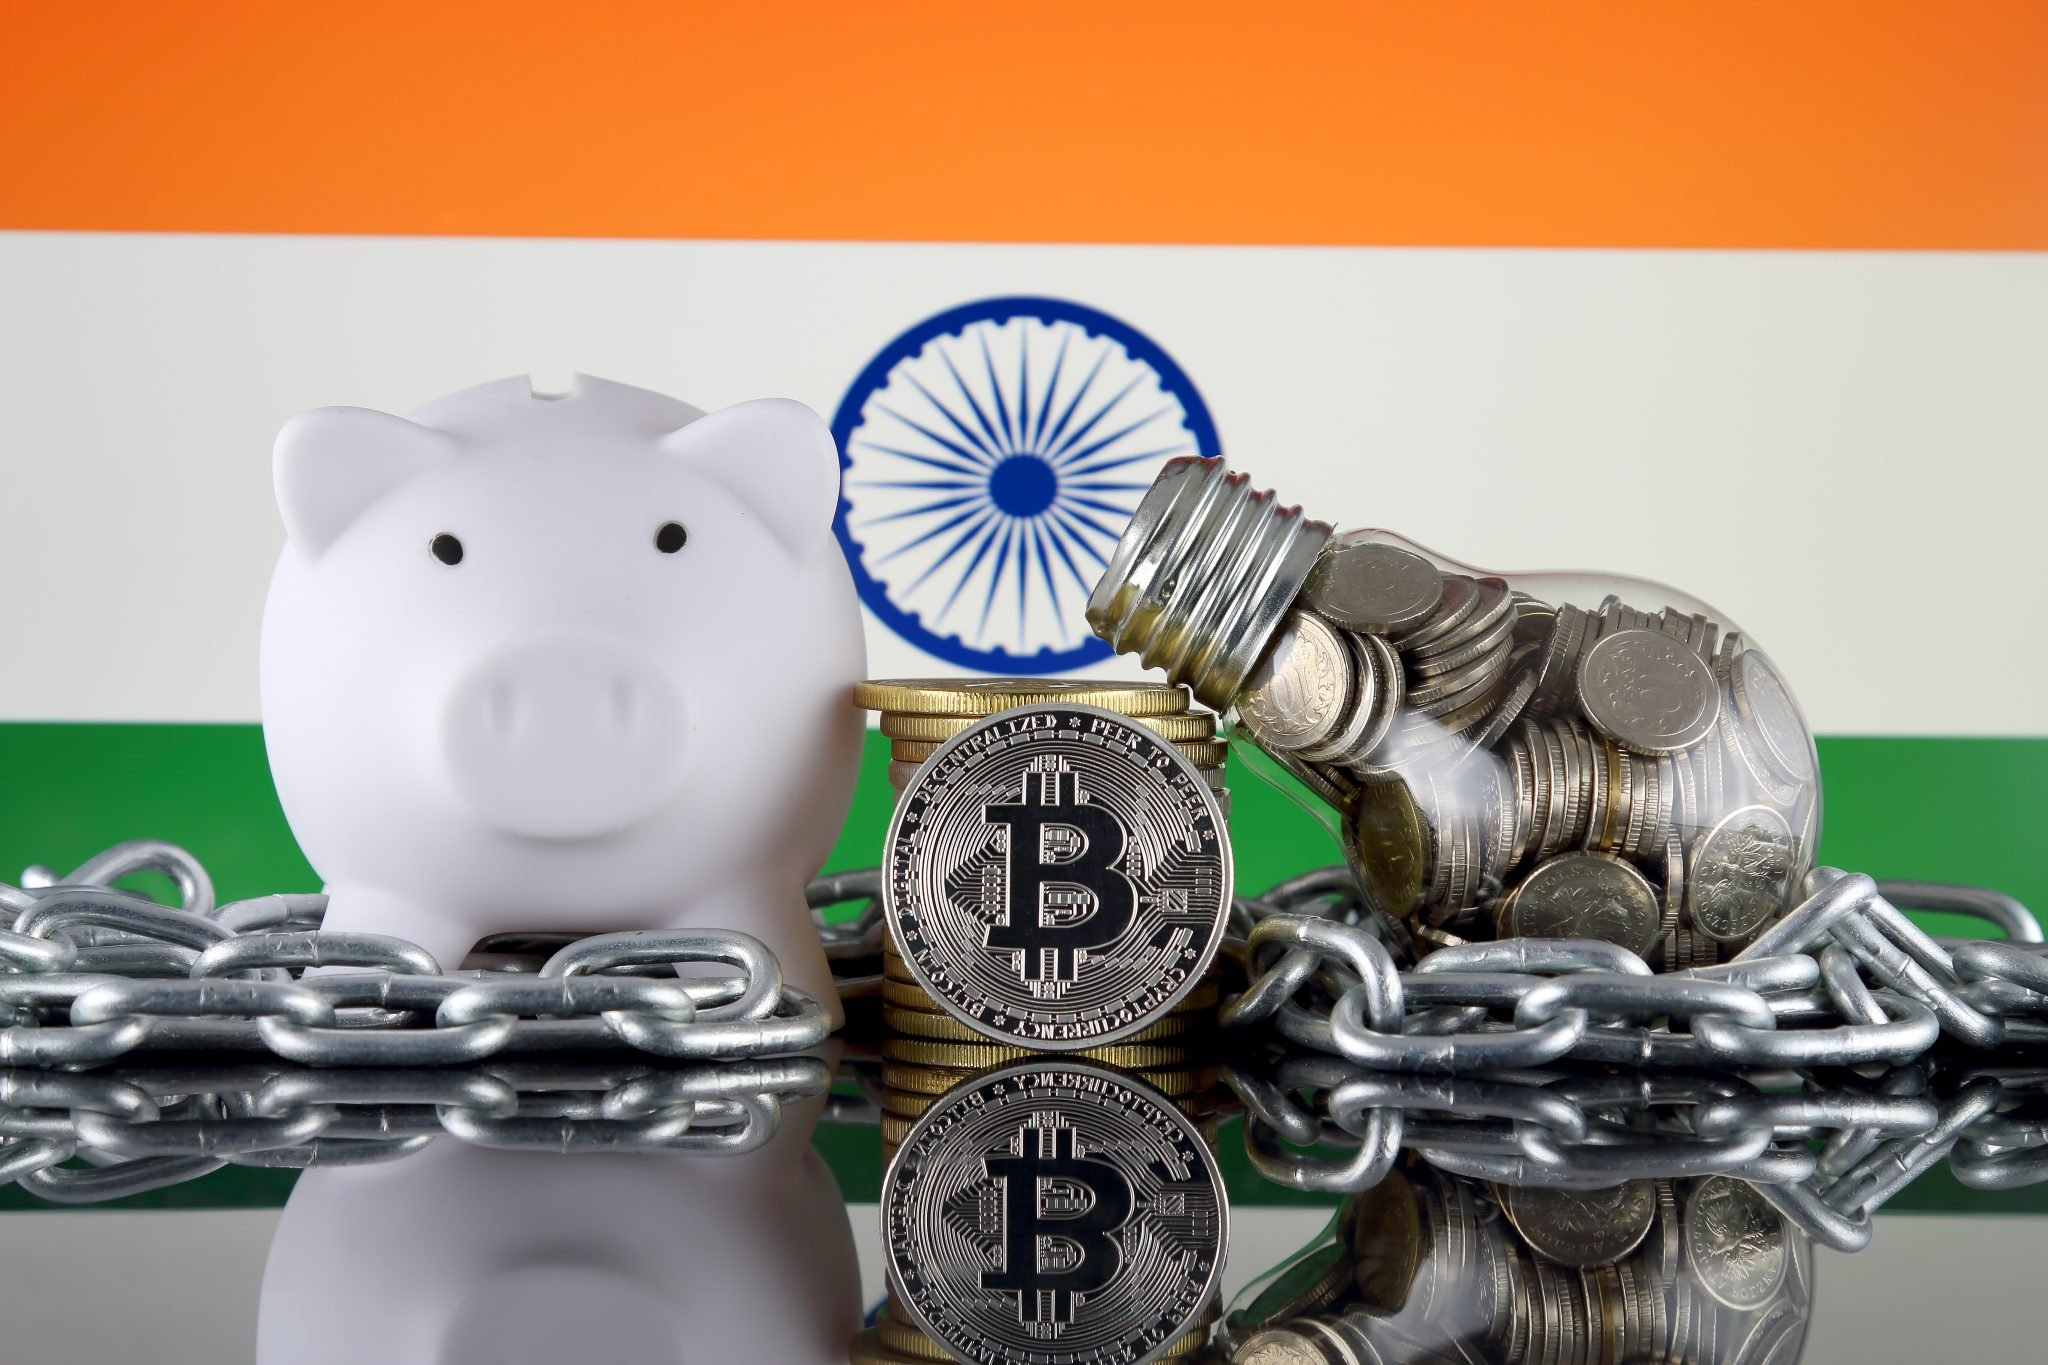 Bitcoin (BTC), Blockchain Technology, energy concept and India Flag. Electricity prices, energy saving in the cryptocurrency mining business.